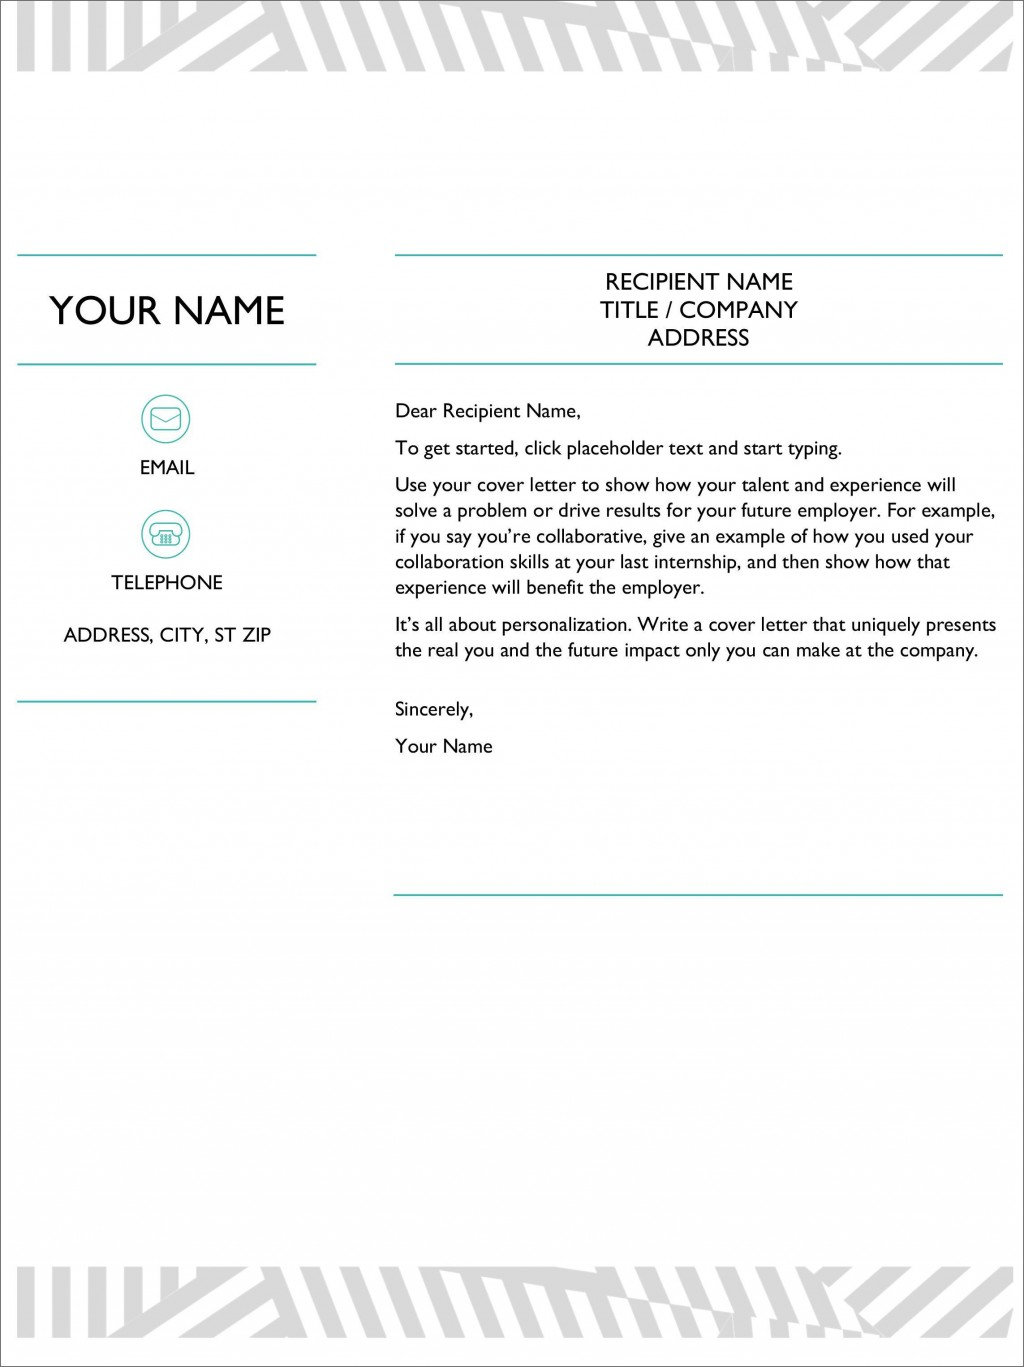 002 Astounding Microsoft Word Letter Template High Resolution  Free Download M Of ResignationLarge